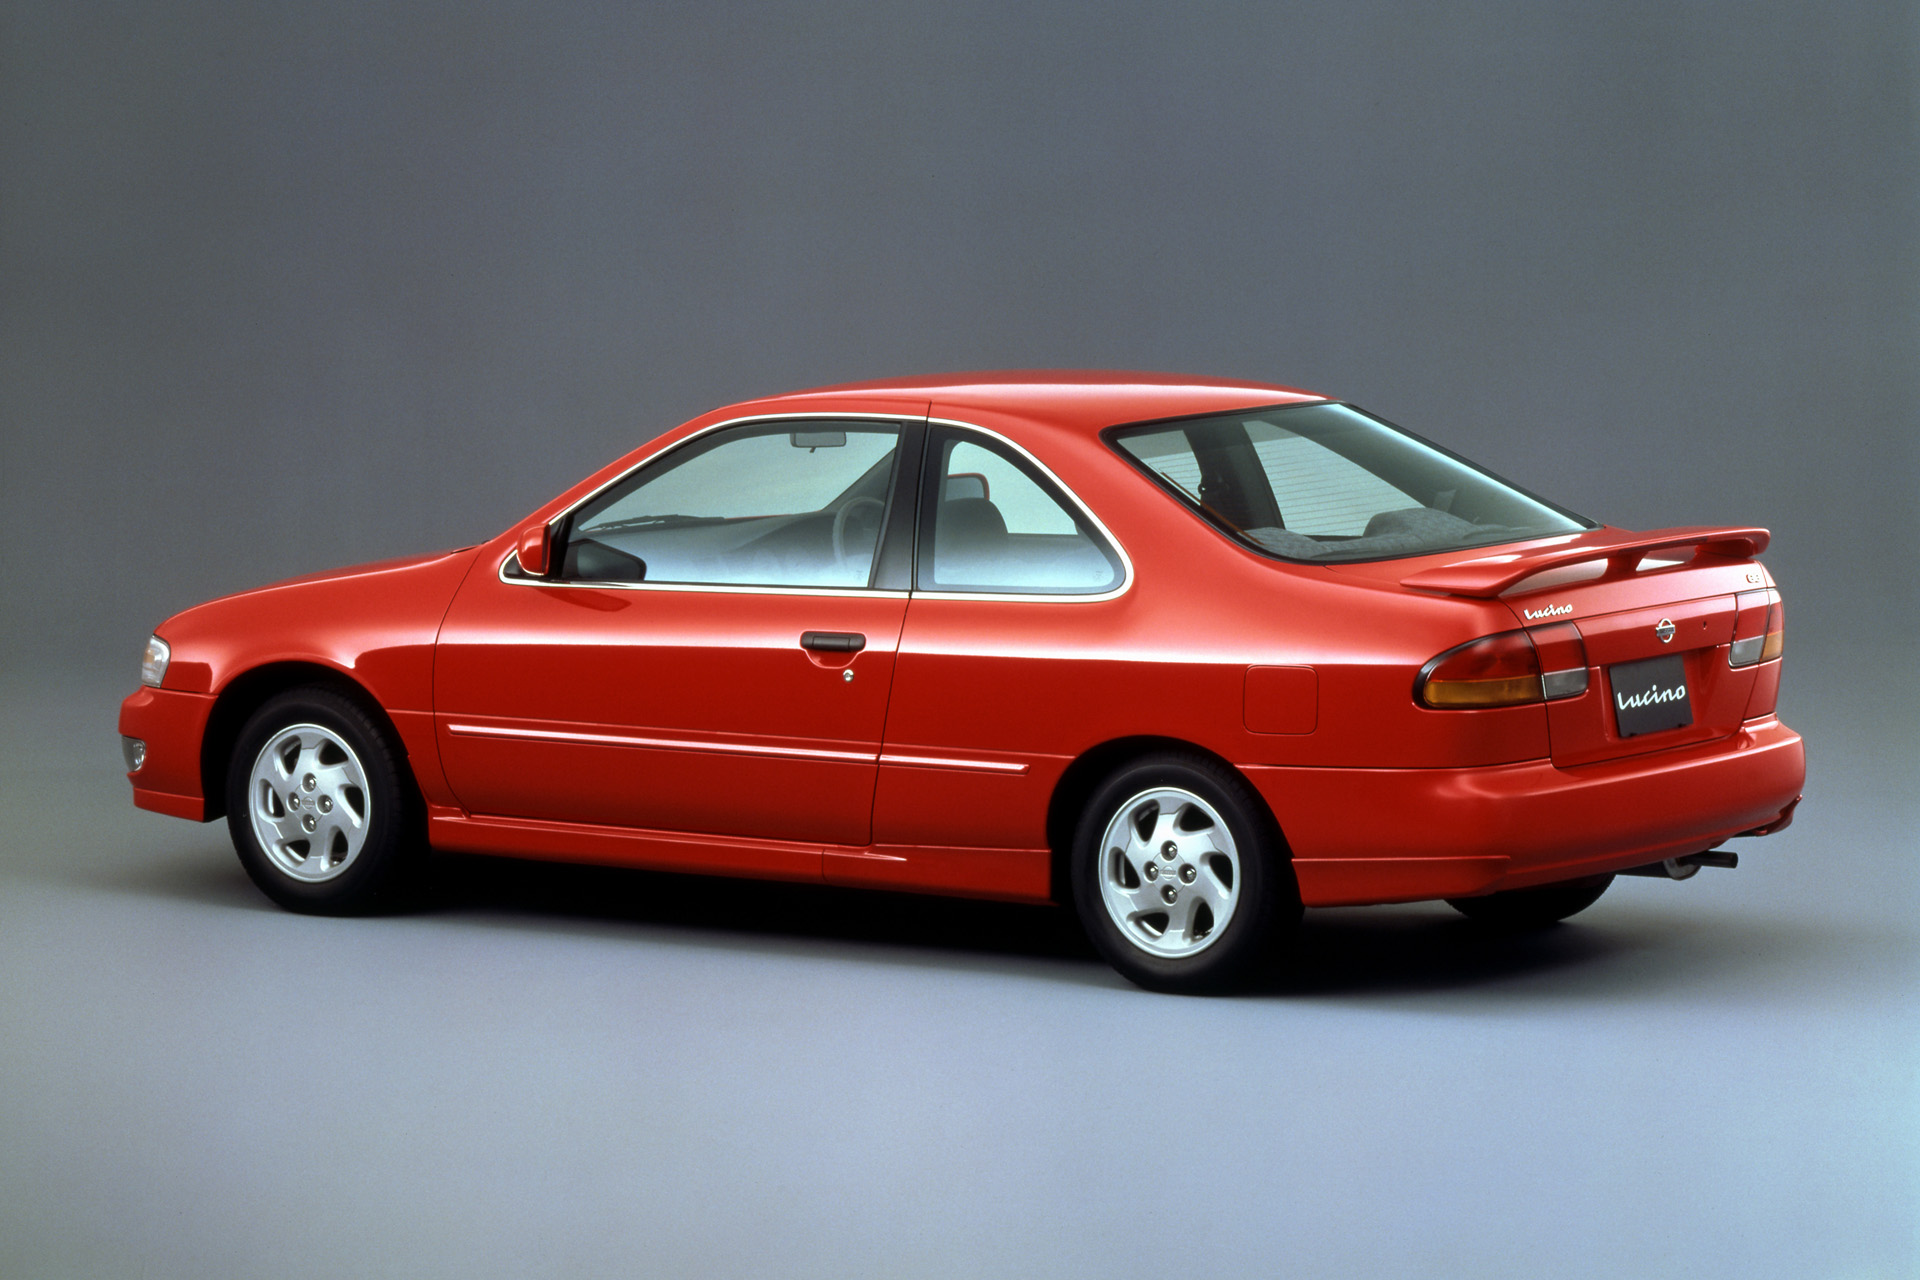 Where Are Nissans Made >> Forgotten Nissans Of The '80s & '90s - Speedhunters